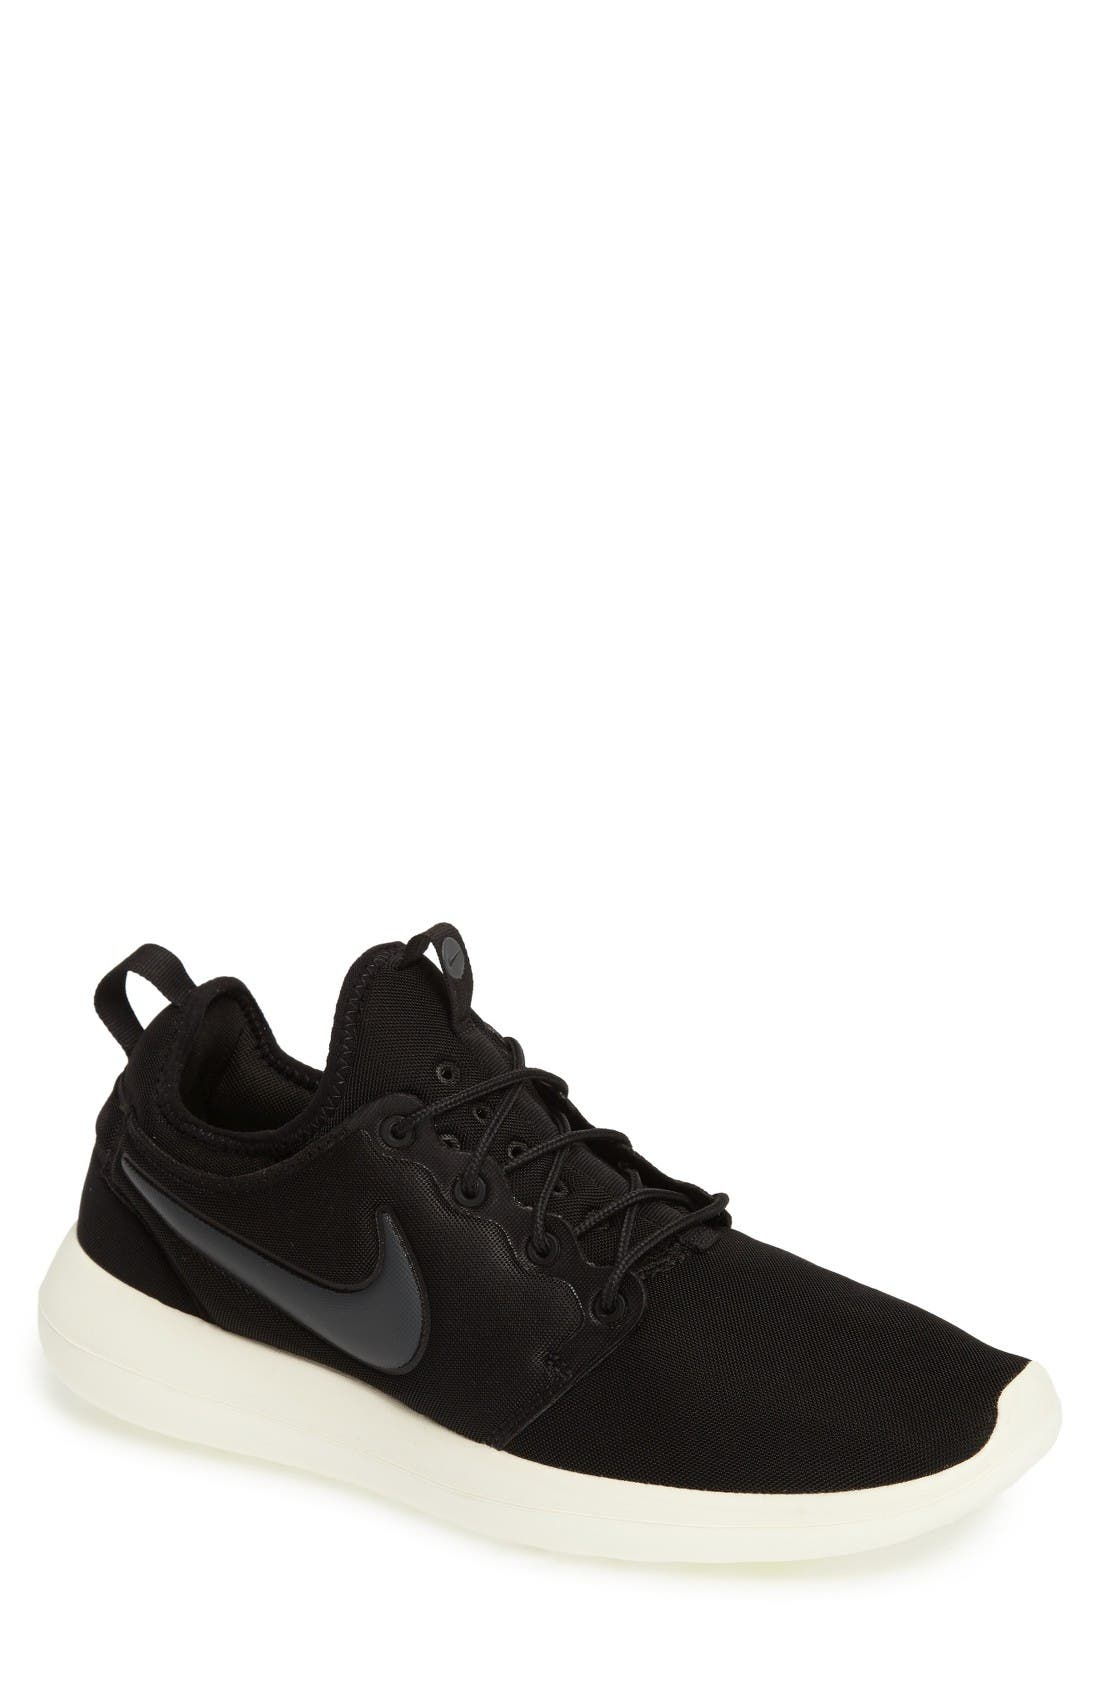 Roshe Two Sneaker,                         Main,                         color, Black/ Anthracite/ Sail/ Volt